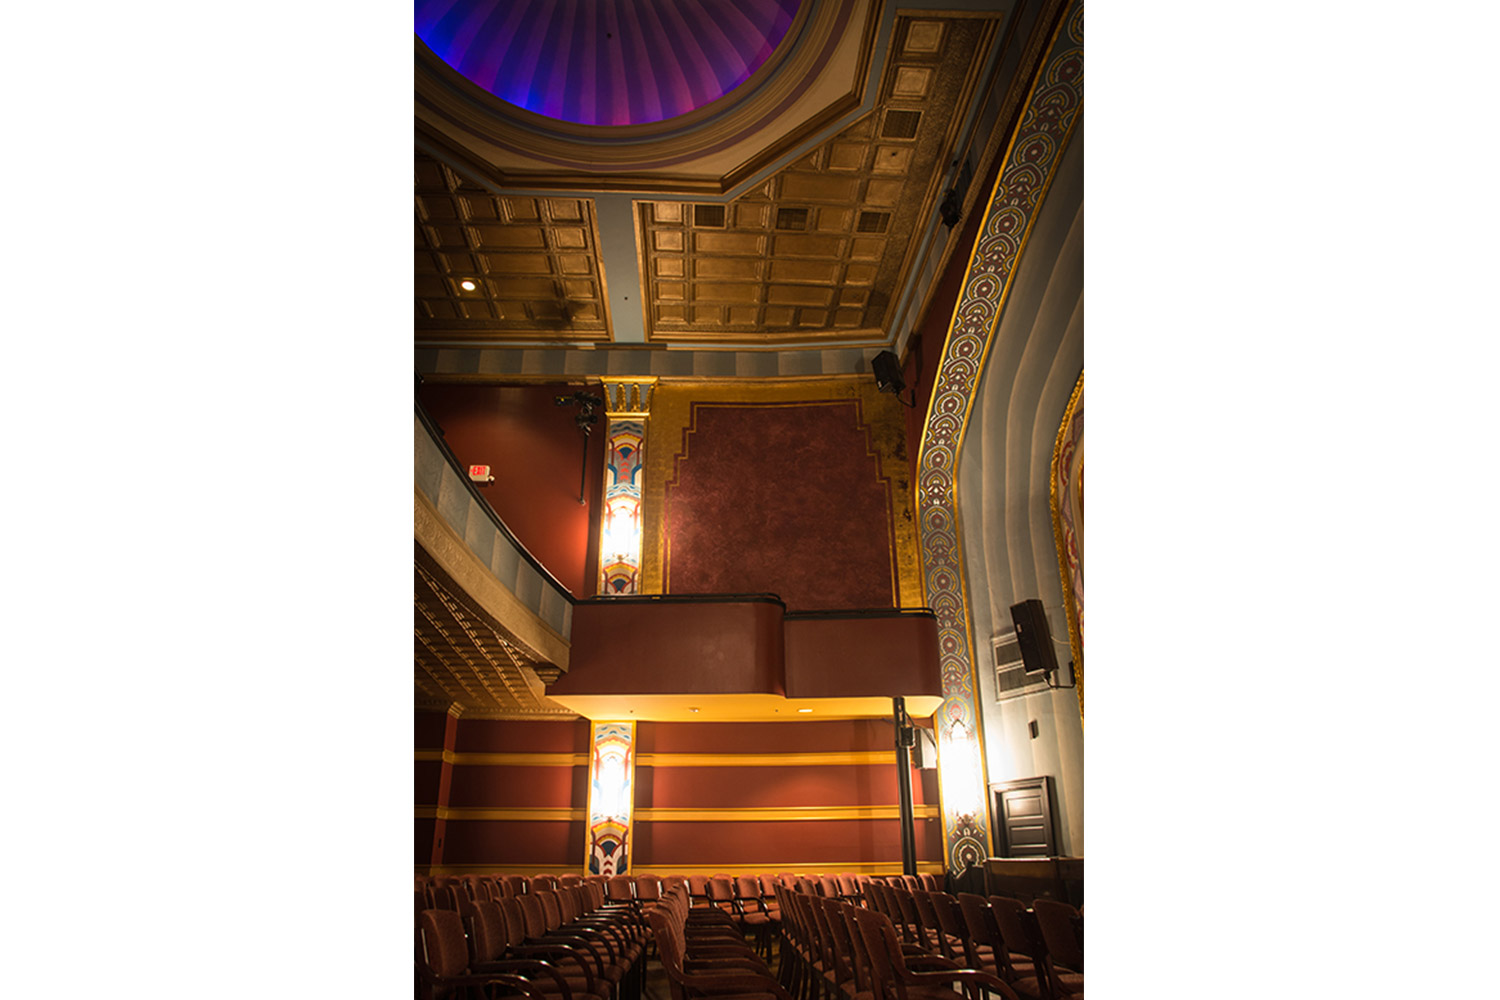 The Avalon Foundation, which runs the Avalon Theatre, secured the services of WSDG during a larger overall renovation initiative to update the theater's acoustics, production lighting, and audiovisual capabilities. Overall view.